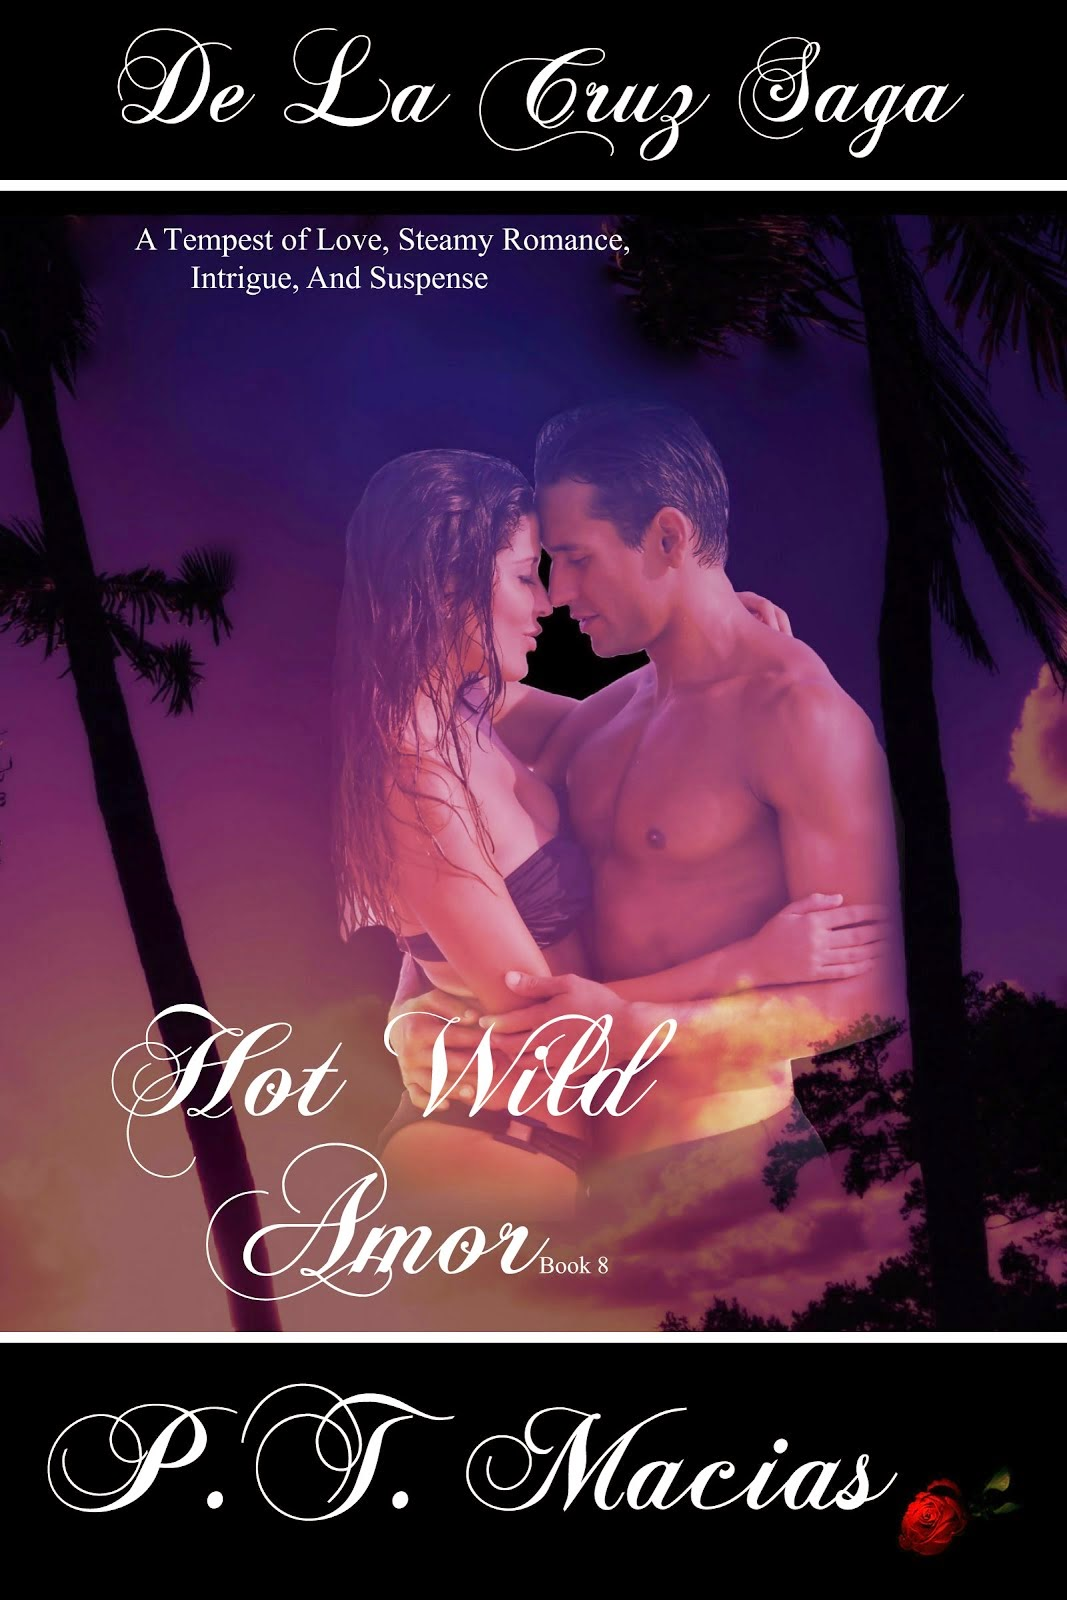 Hot Wild Amor, De La Cruz Saga Book 8